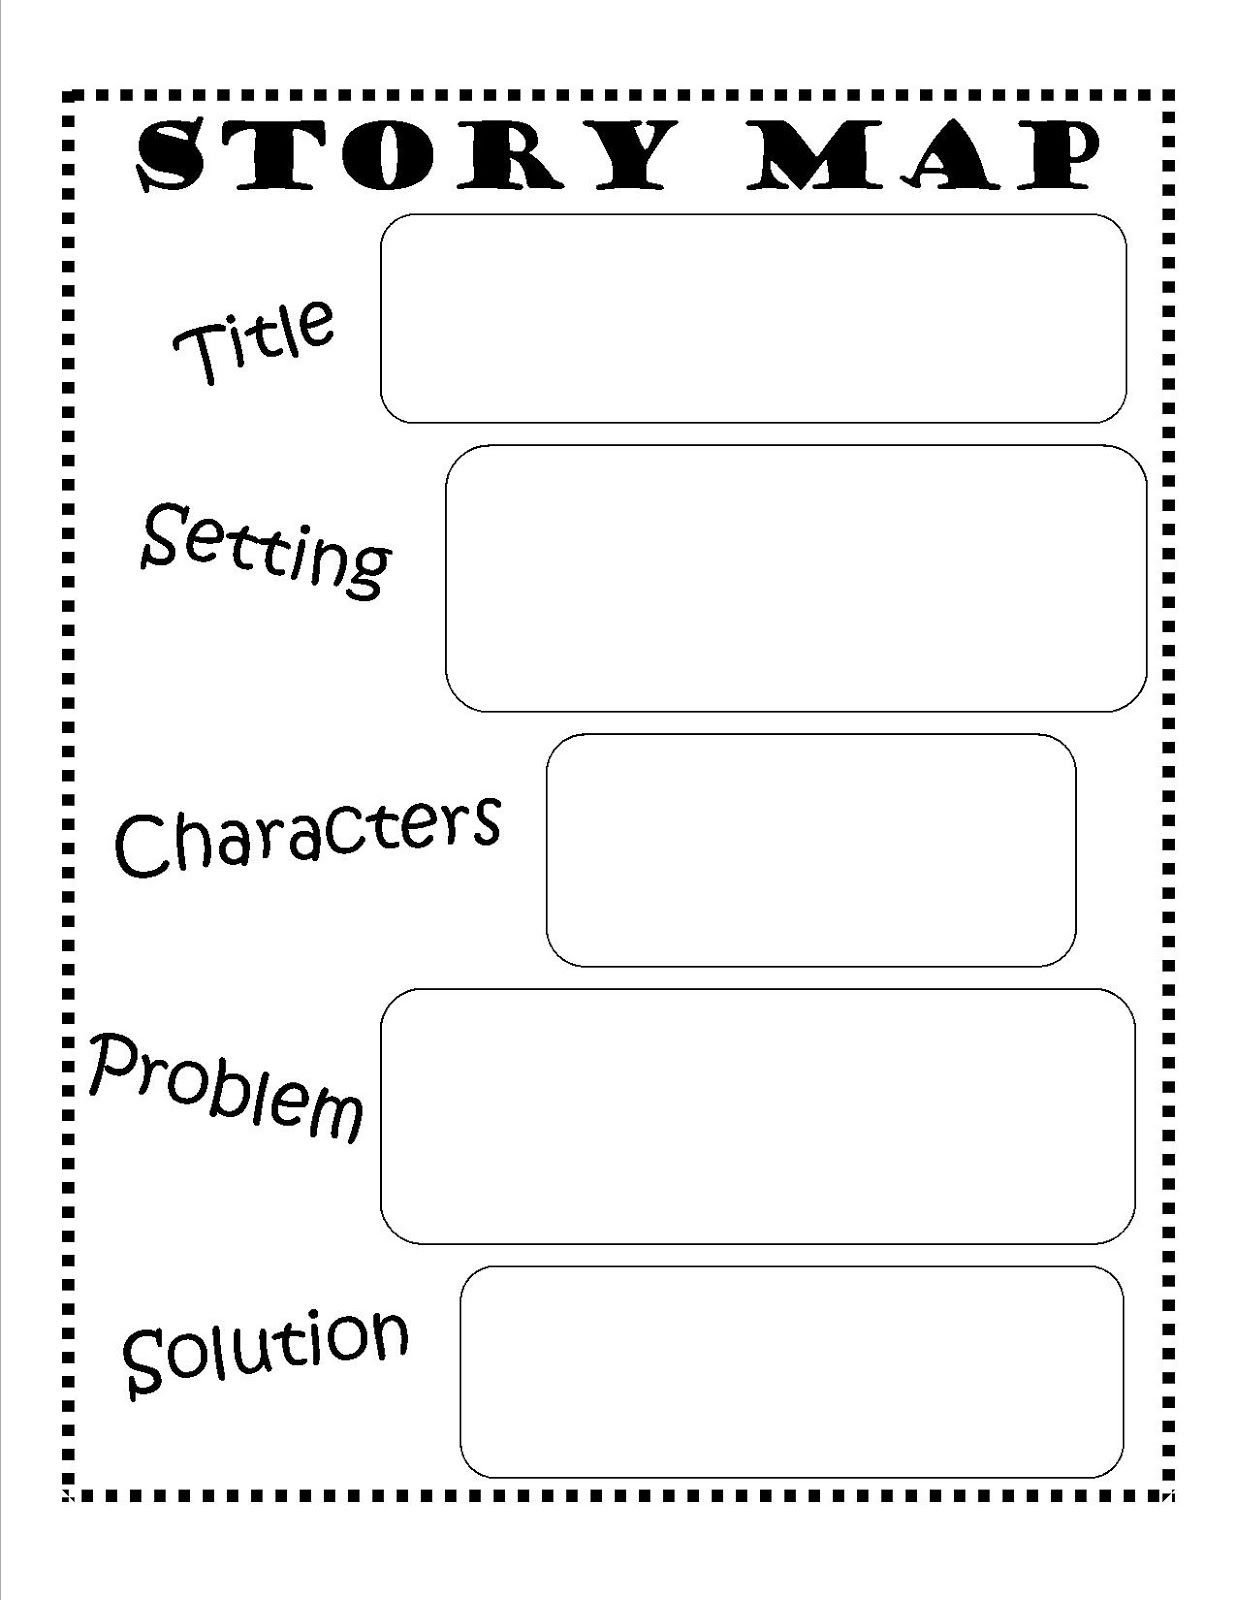 Problem and solution Reading Worksheets Story Map topographic Maps Worksheets 5th Grade Ytjm96ol In